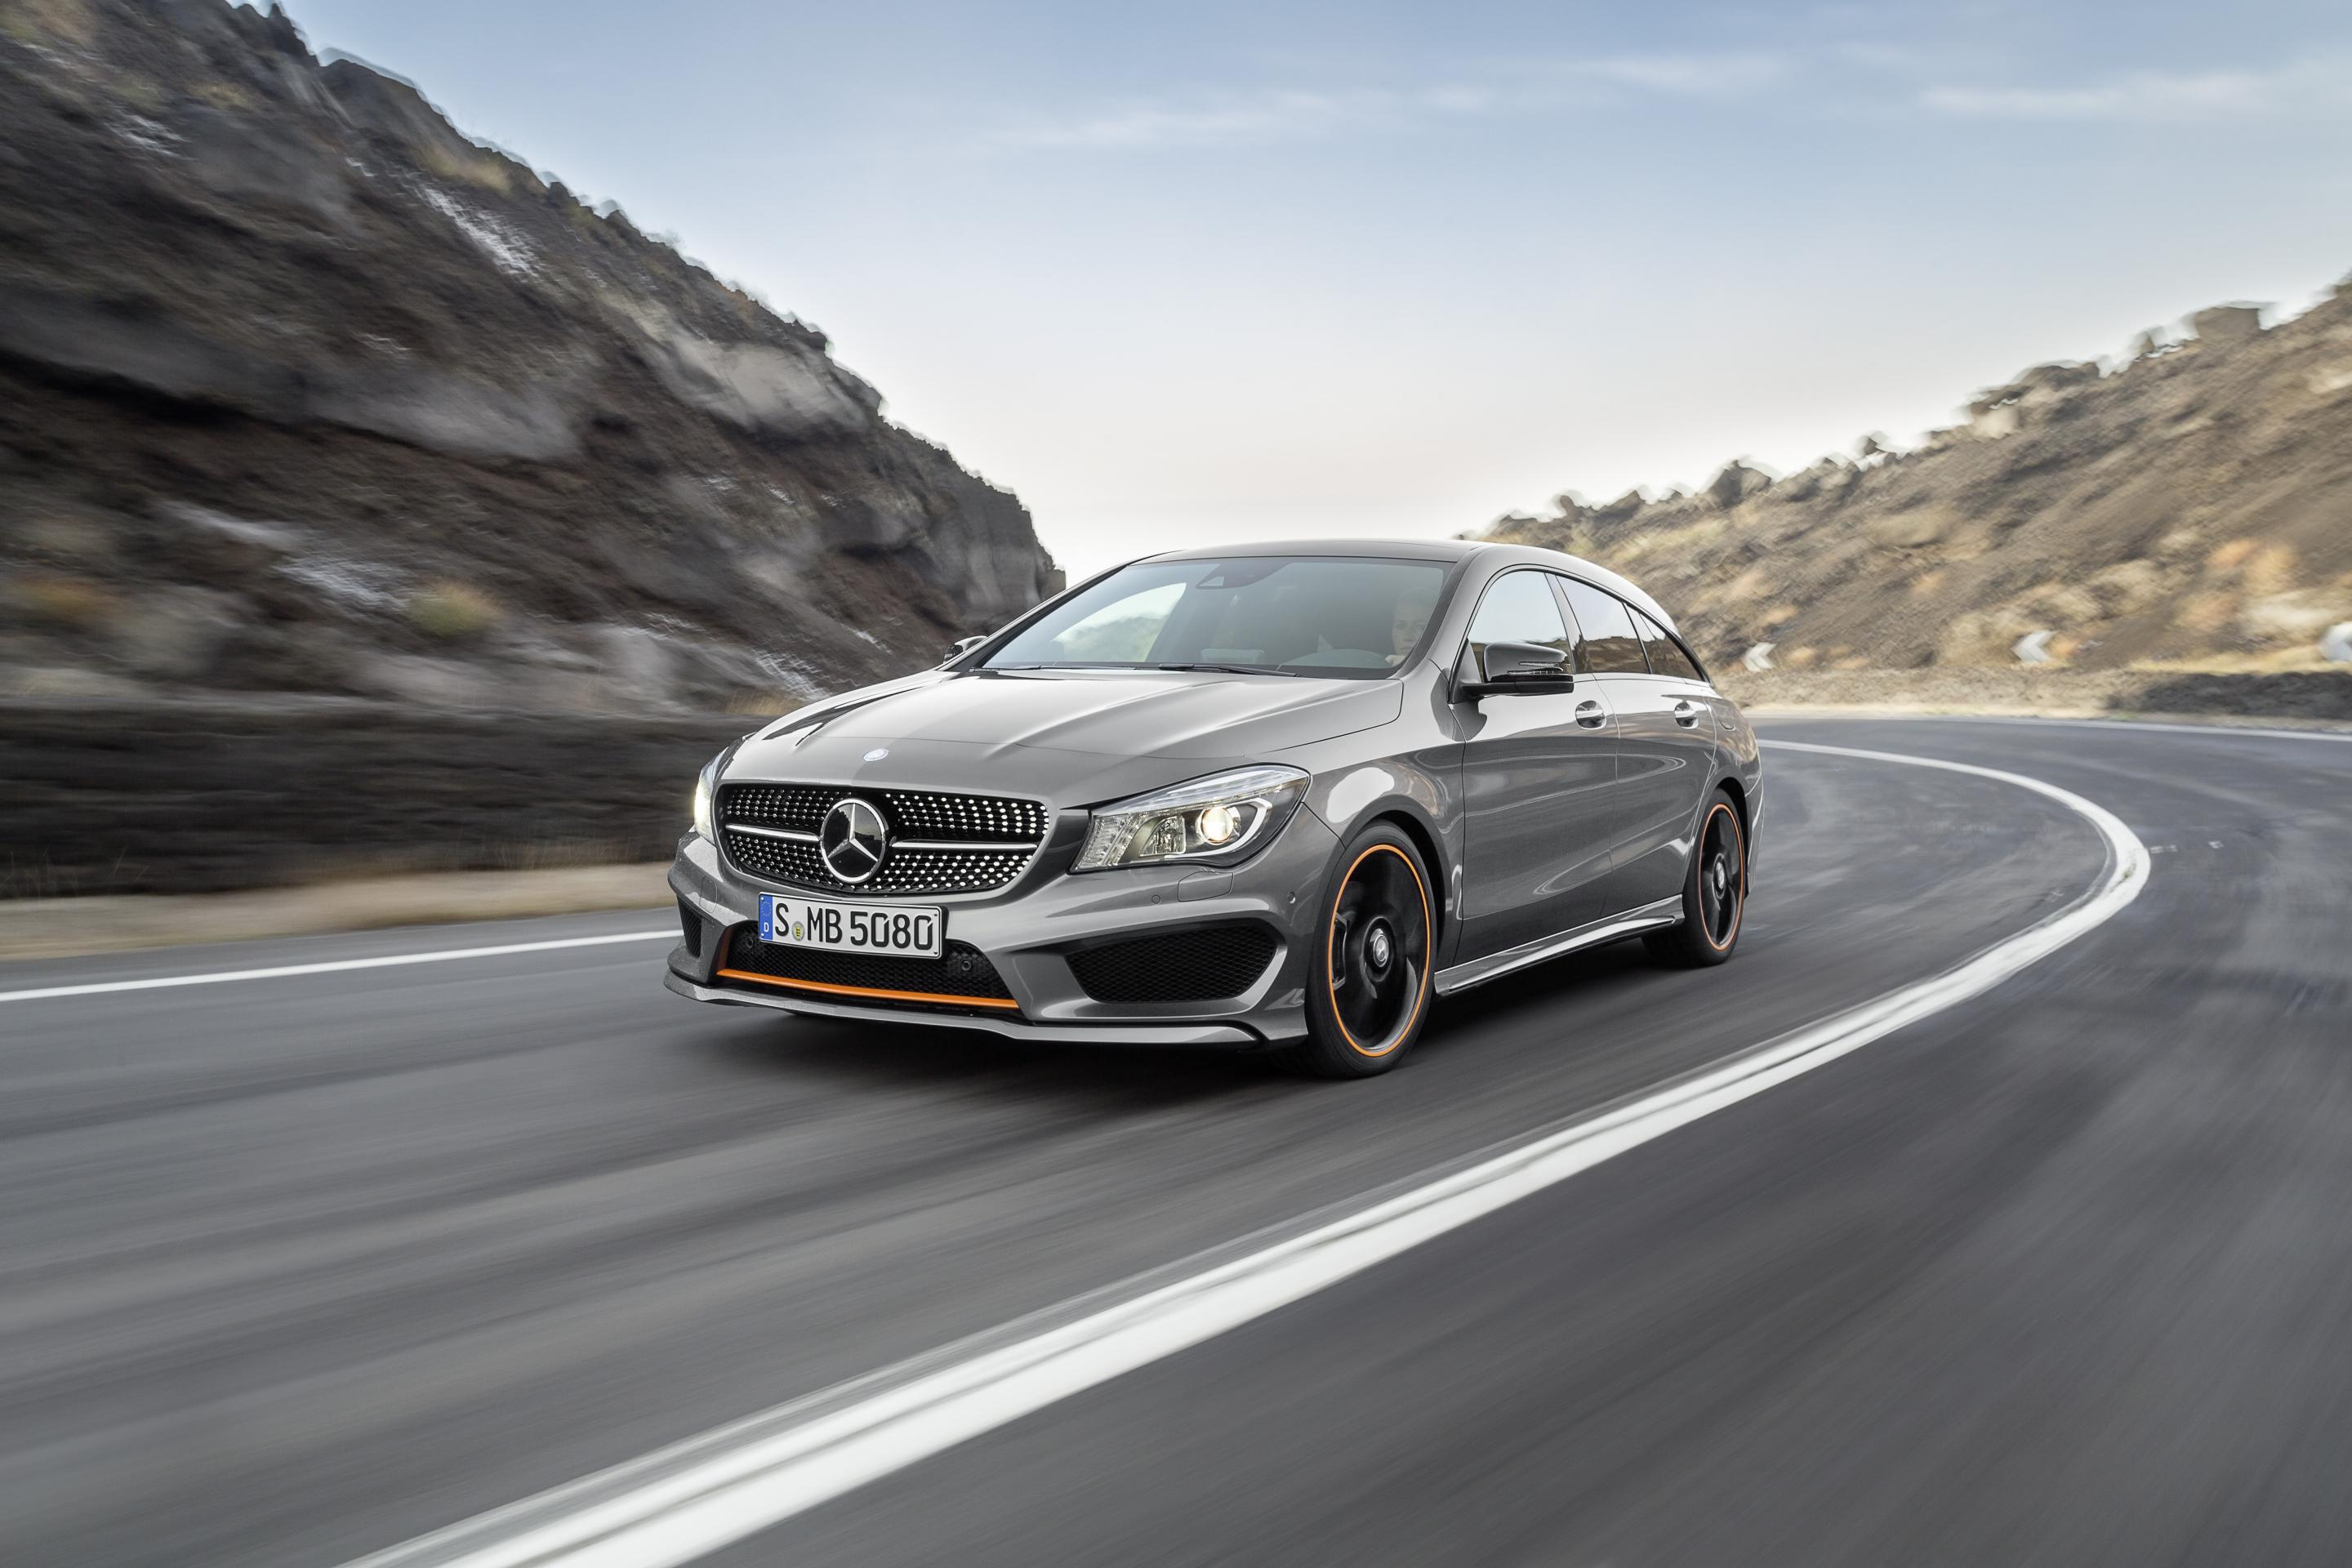 2015 cla 45 amg shooting brake x117 caught near stuttgart. Black Bedroom Furniture Sets. Home Design Ideas